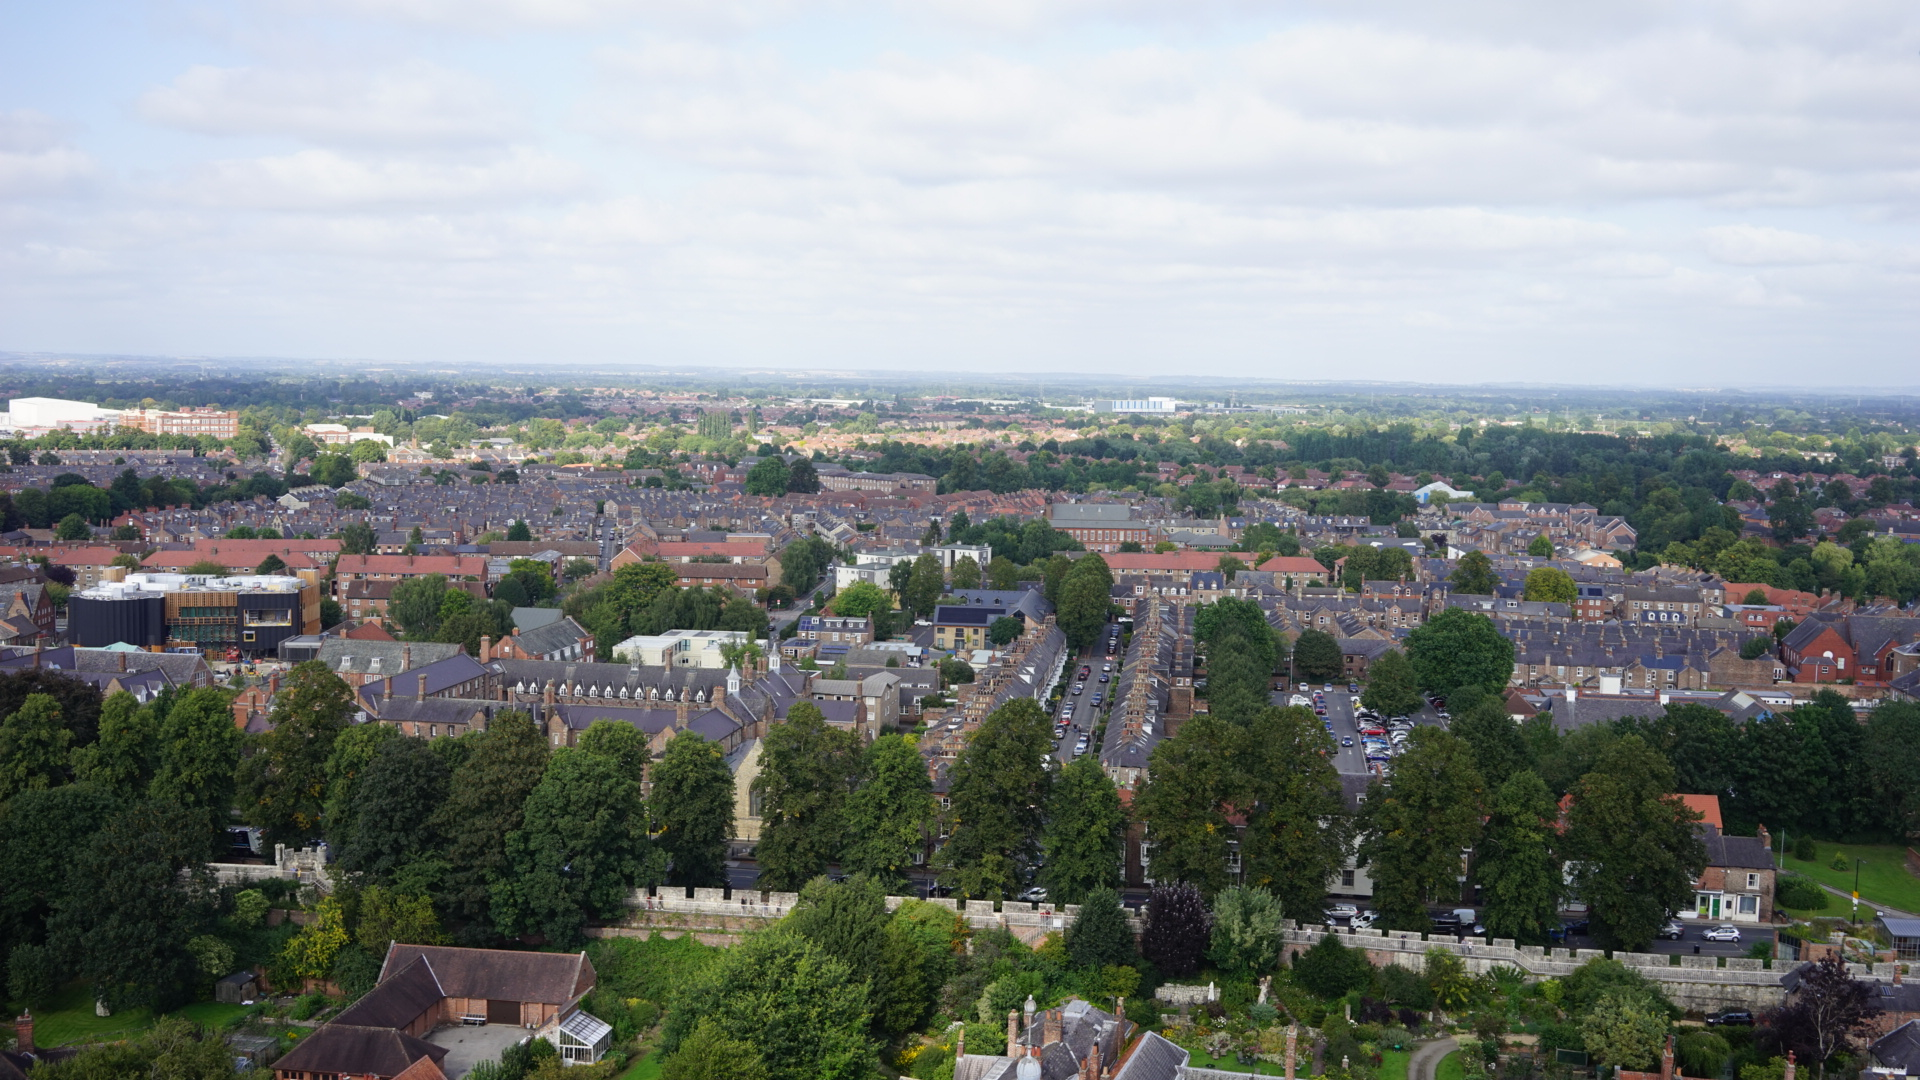 Aerial view of the Groves area of York, taking from the Minster tower.